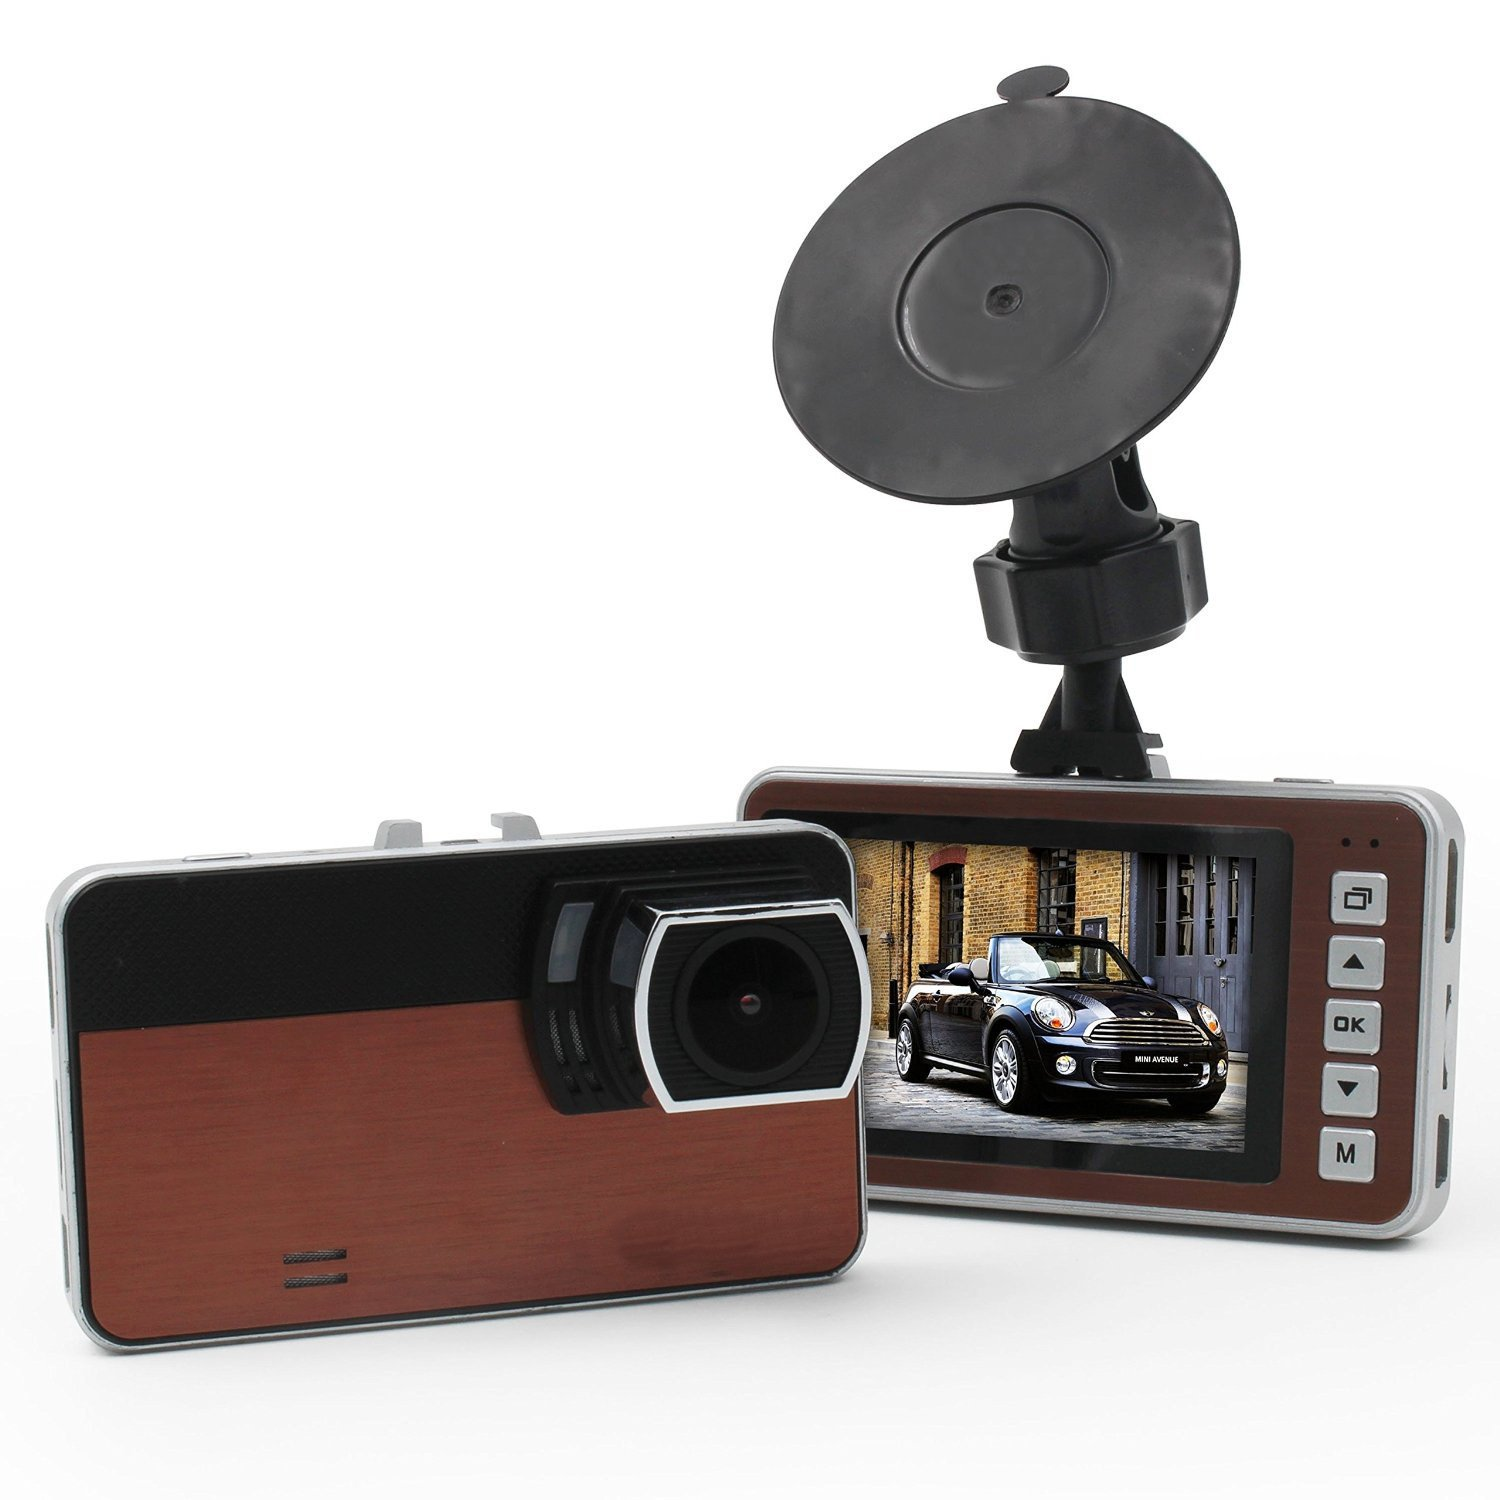 VRFEL E28 1080P Full Hd Dash Cam Car Video Camera Auto Dashboard Driving Recorder with super good low light performance and 170 Wide Angle lens.